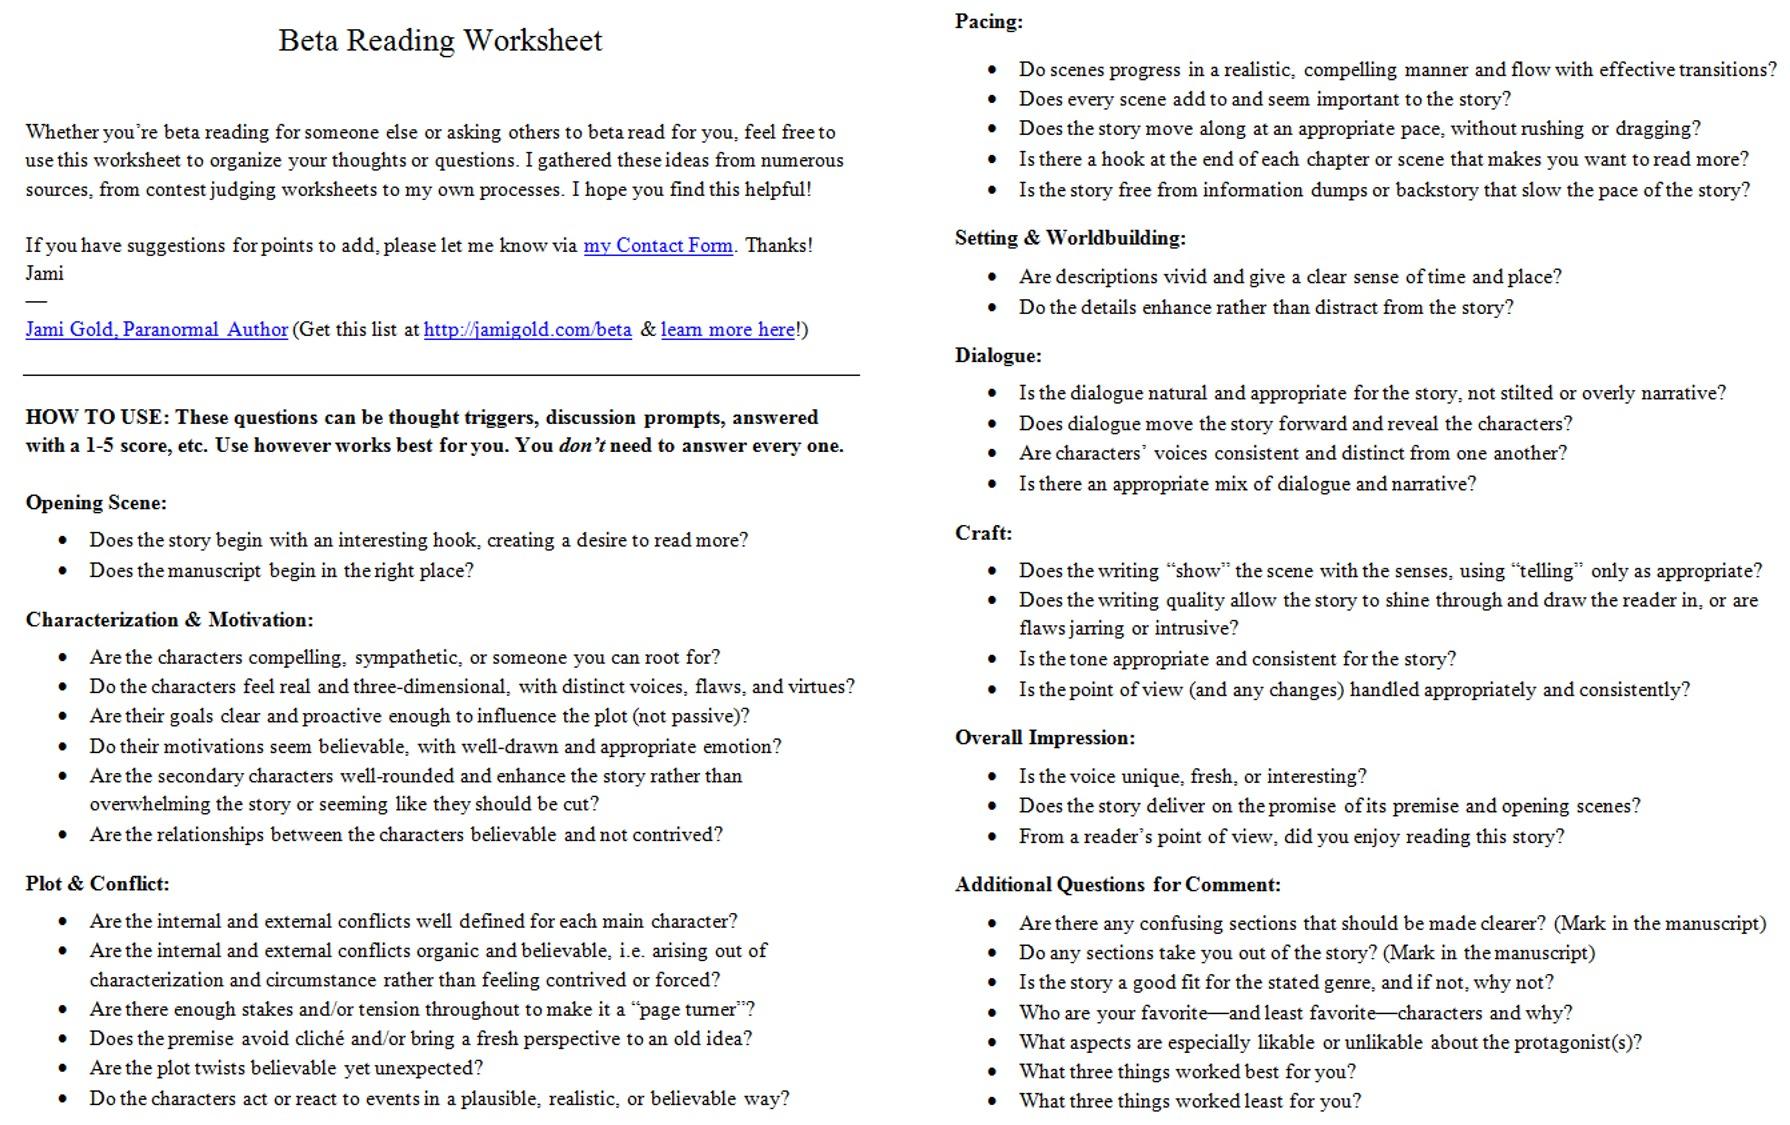 Aldiablosus  Seductive Worksheets For Writers  Jami Gold Paranormal Author With Heavenly Screen Shot Of The Twopage Beta Reading Worksheet With Adorable Simpson Scientific Method Worksheet Also Latitude And Longitude Worksheets High School In Addition Inca Worksheet And Fun Vocabulary Worksheets As Well As Length Worksheets For Kindergarten Additionally Camicu Worksheet From Jamigoldcom With Aldiablosus  Heavenly Worksheets For Writers  Jami Gold Paranormal Author With Adorable Screen Shot Of The Twopage Beta Reading Worksheet And Seductive Simpson Scientific Method Worksheet Also Latitude And Longitude Worksheets High School In Addition Inca Worksheet From Jamigoldcom